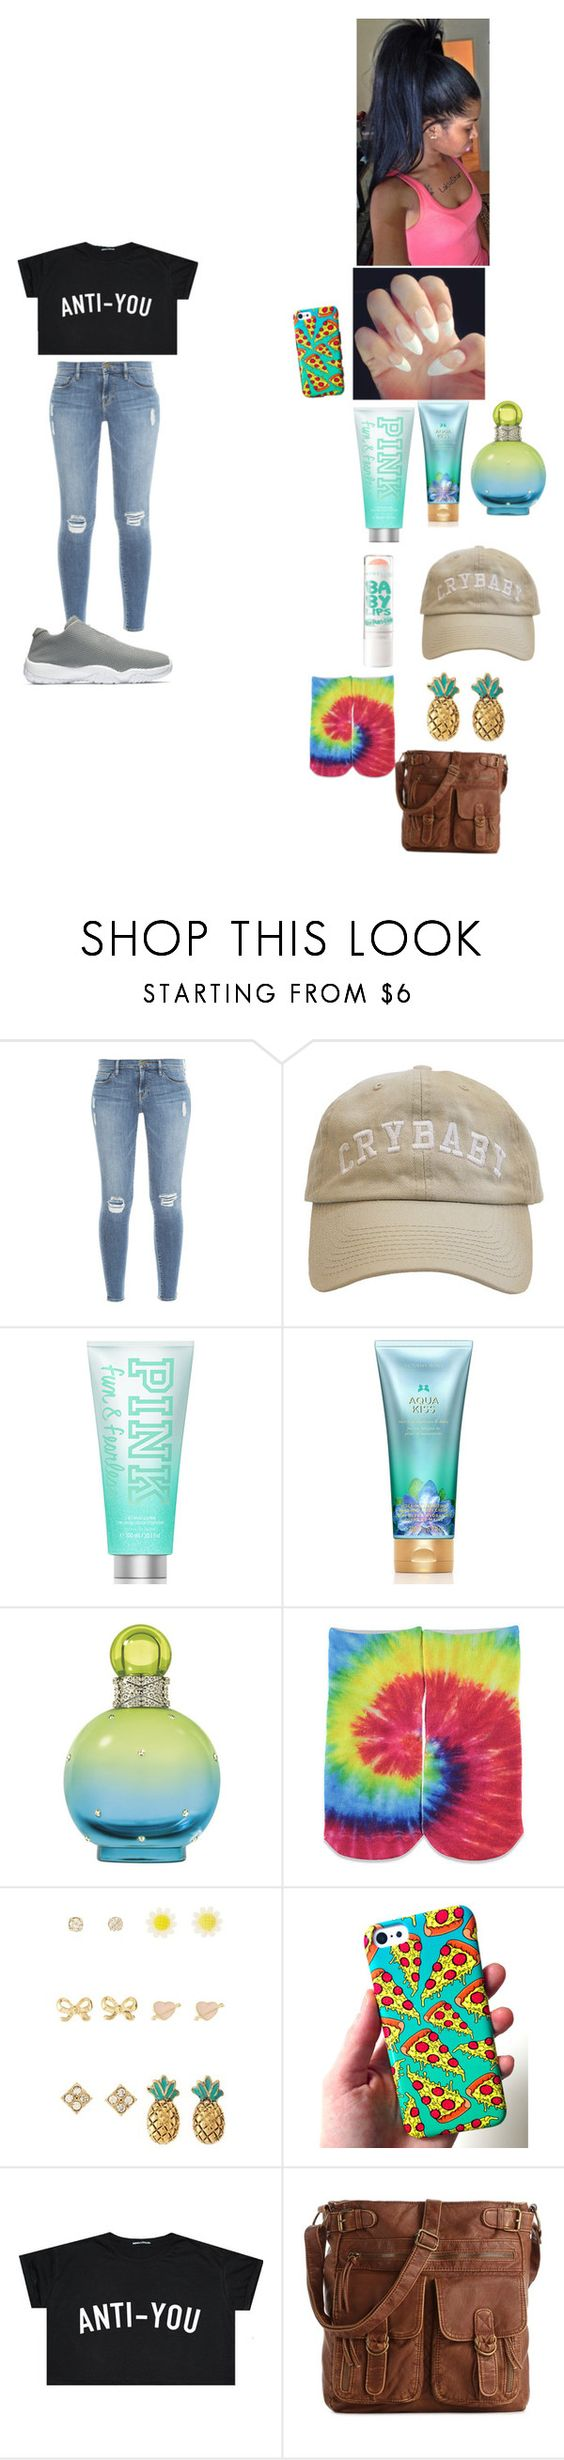 """""""~ S O U L ~"""" by foodislyfe ❤ liked on Polyvore featuring Frame Denim, Victoria's Secret PINK, Victoria's Secret, Britney Spears, Maybelline, Forever 21, Charlotte Russe and Mix No. 6"""